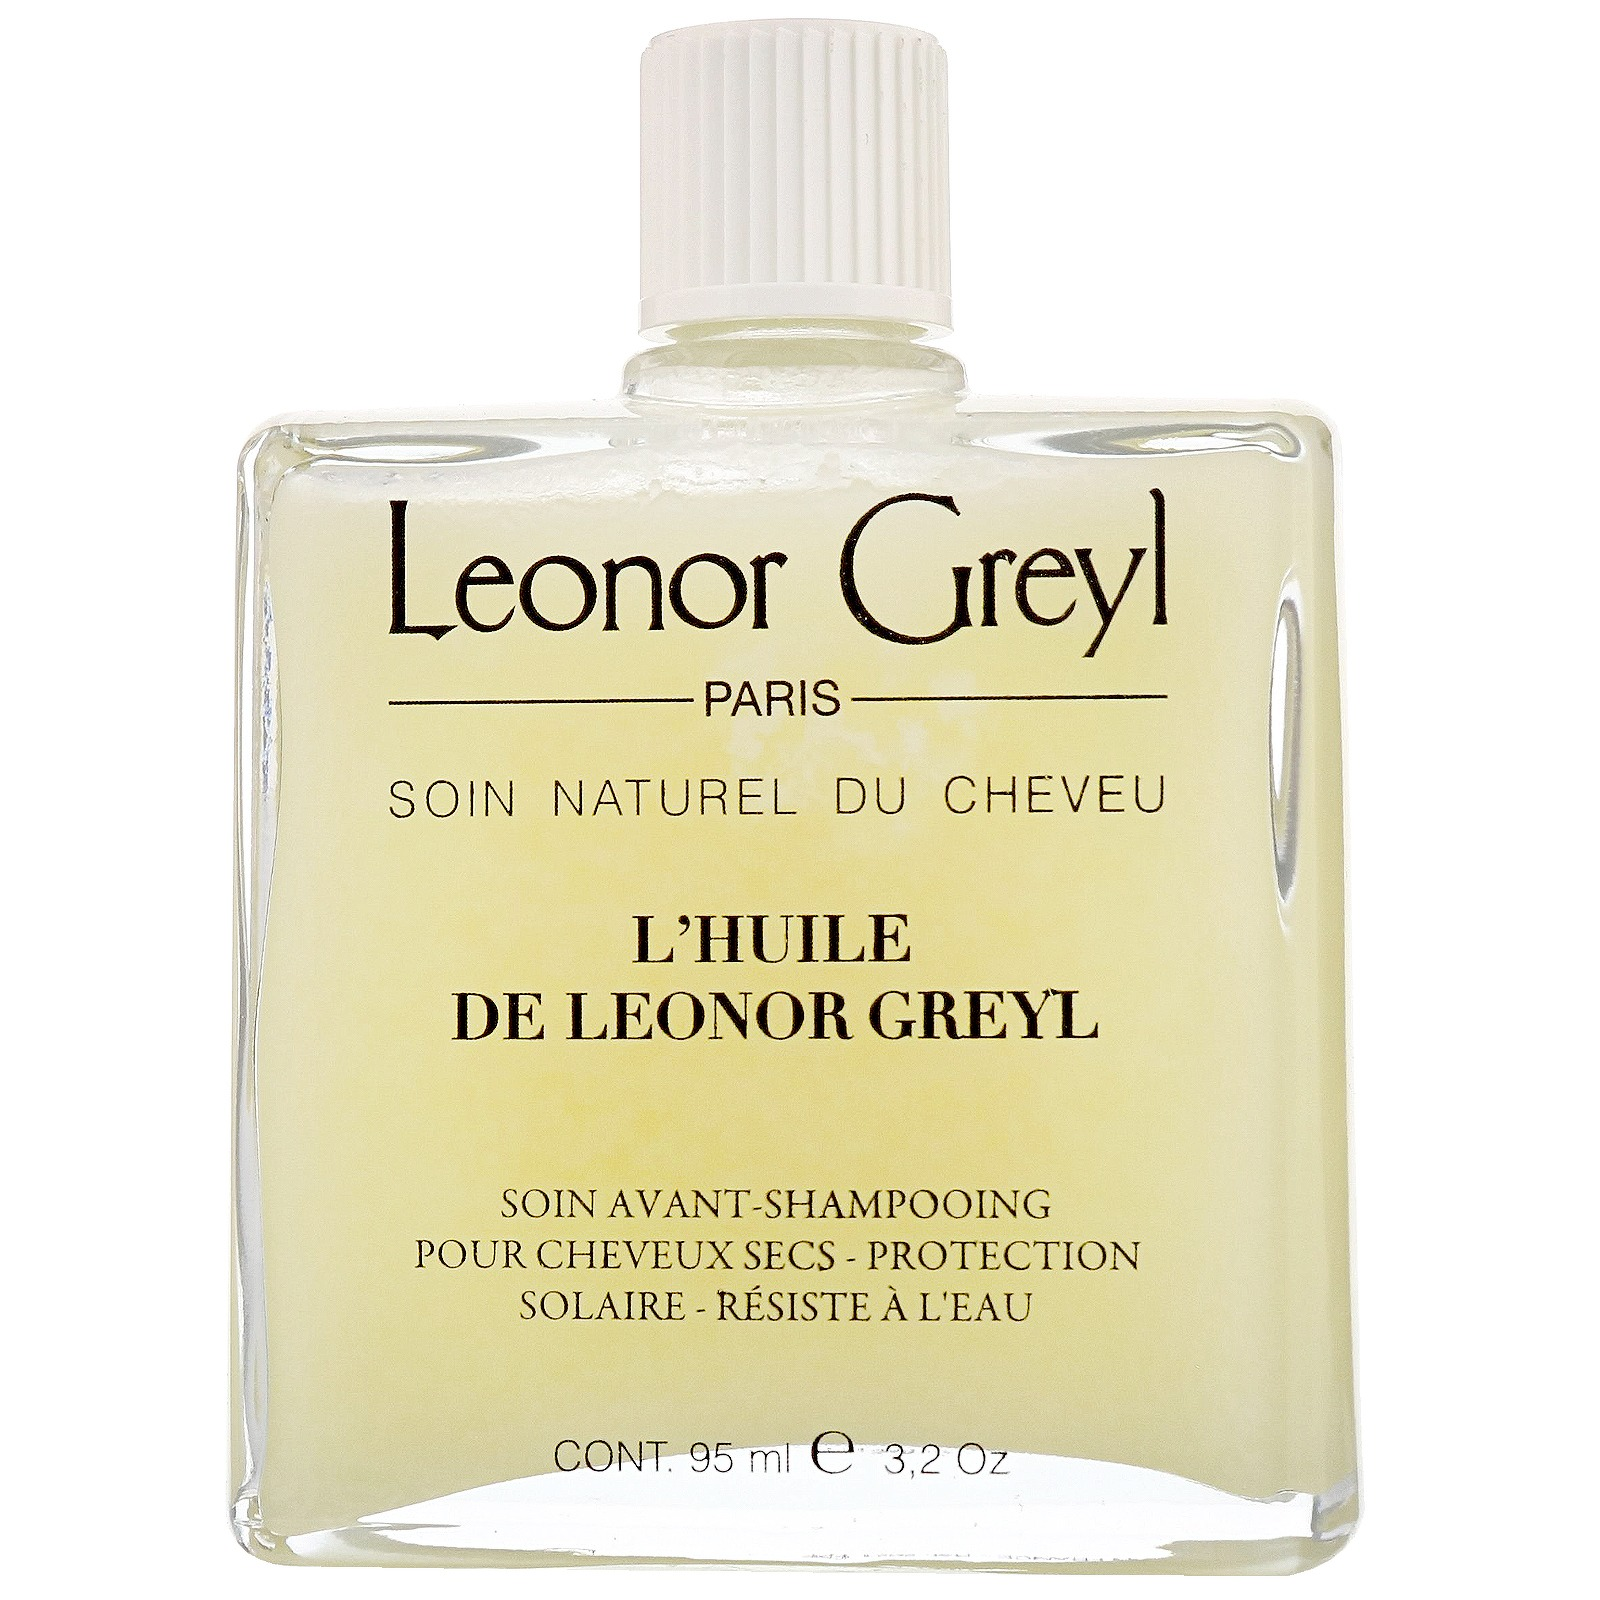 Leonor Greyl Beauty-Enhancing Oils L'Huile De Leonor Greyl Pre-Shampoo Nourishing Oil 95ml